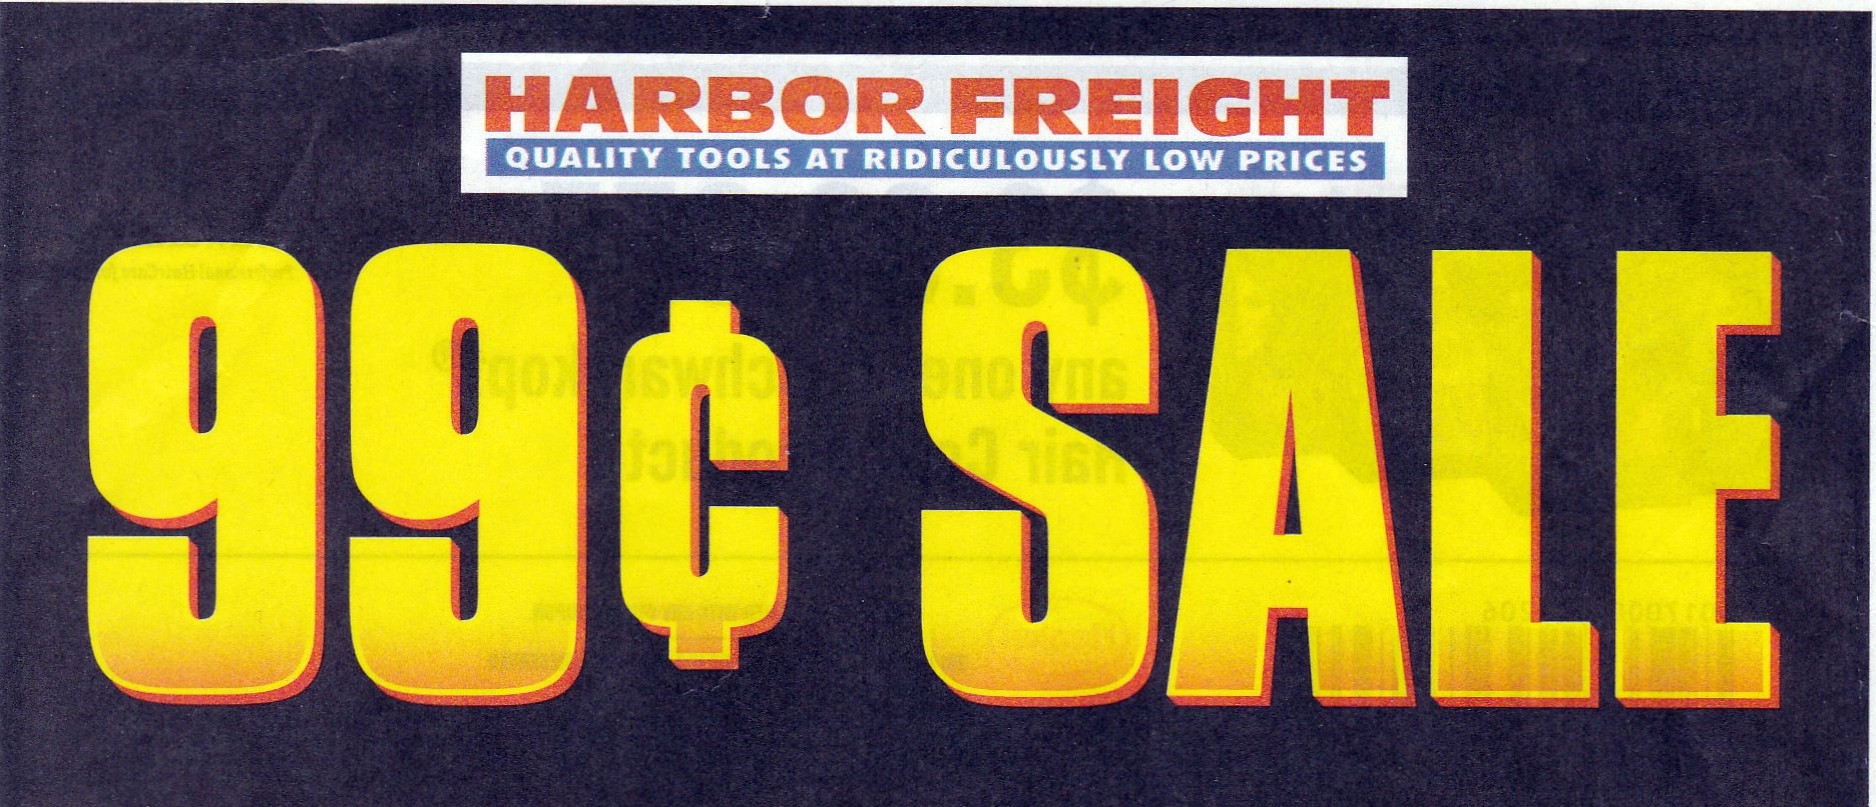 Harbor Freight 99 Cent Sale Coupons Expiring 2 15 18